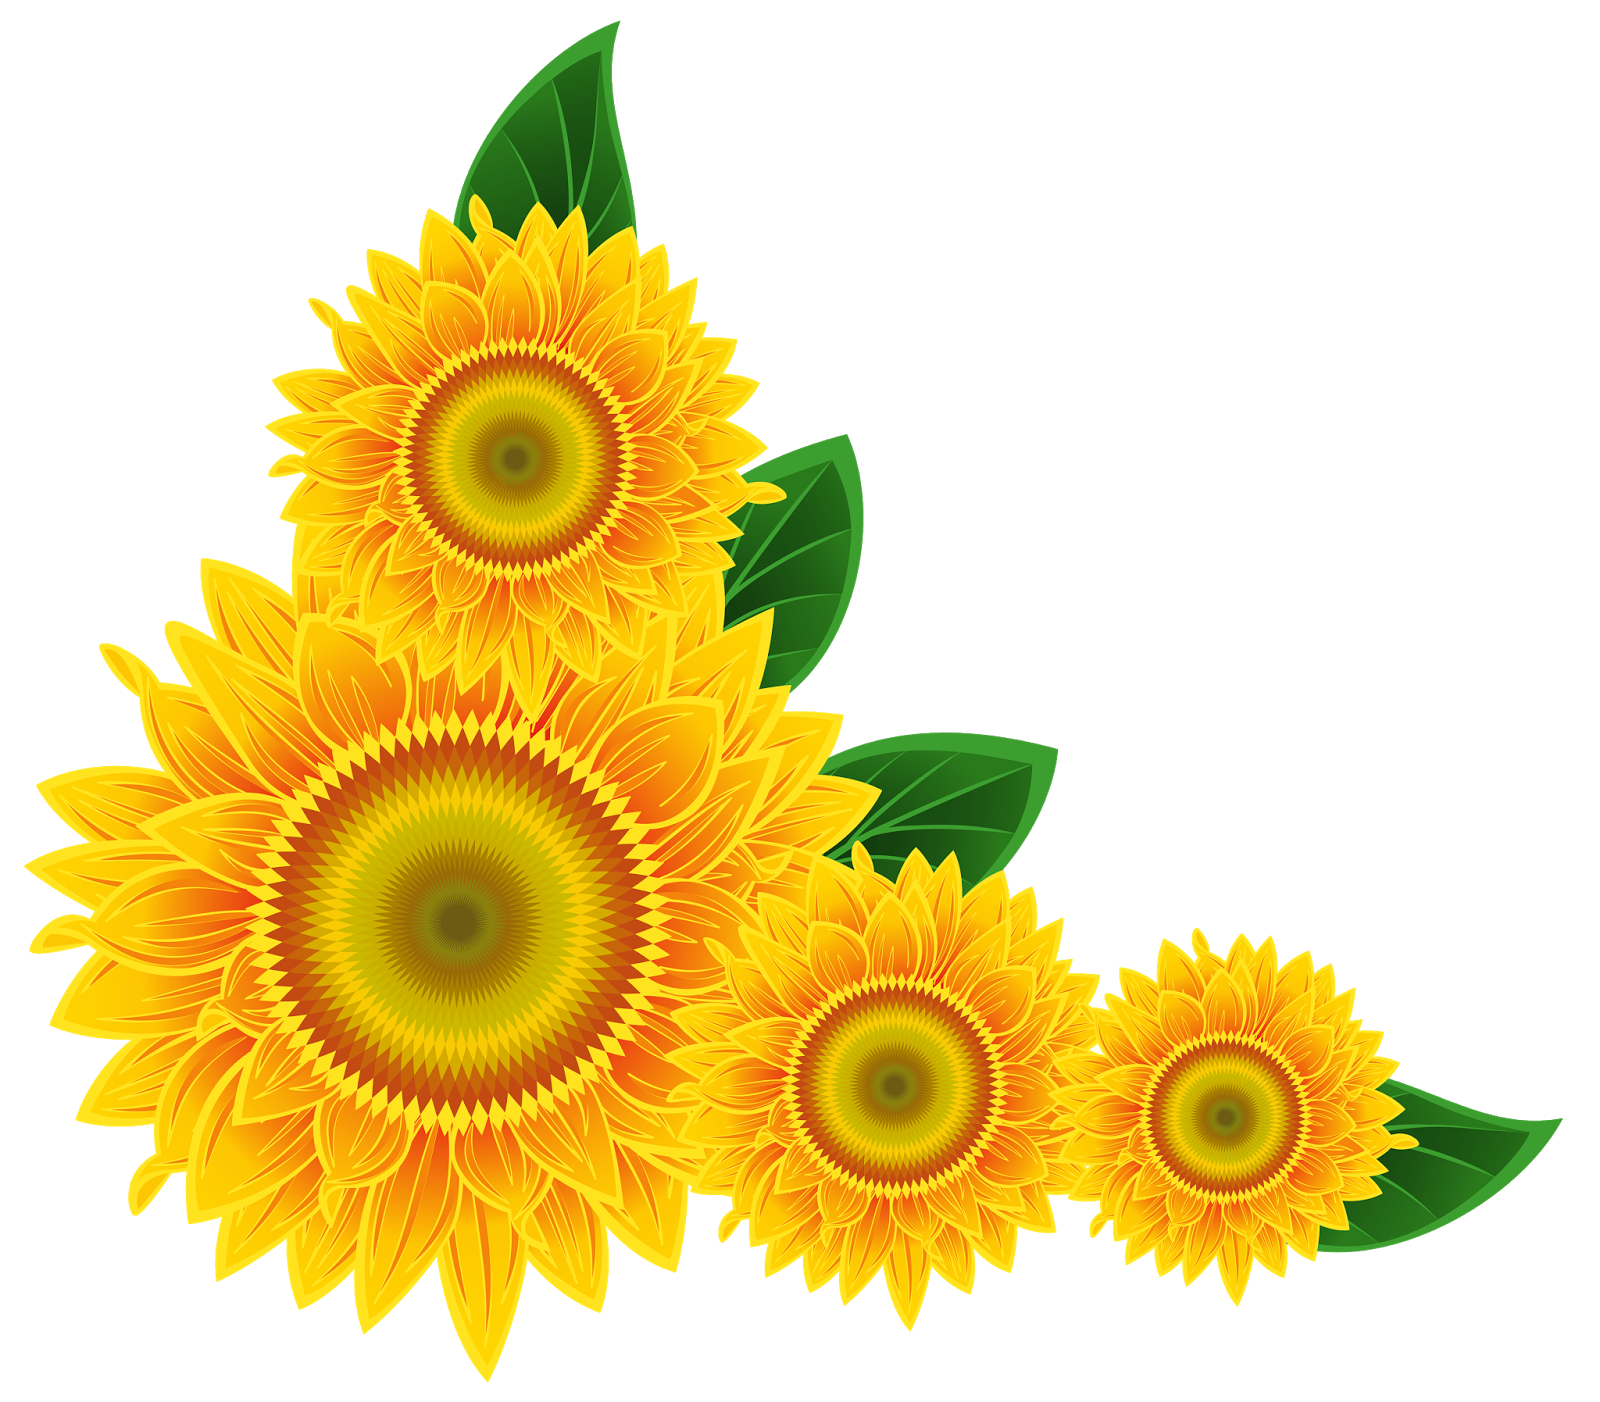 Sunflowers png blue. Sunflower transparent pictures free